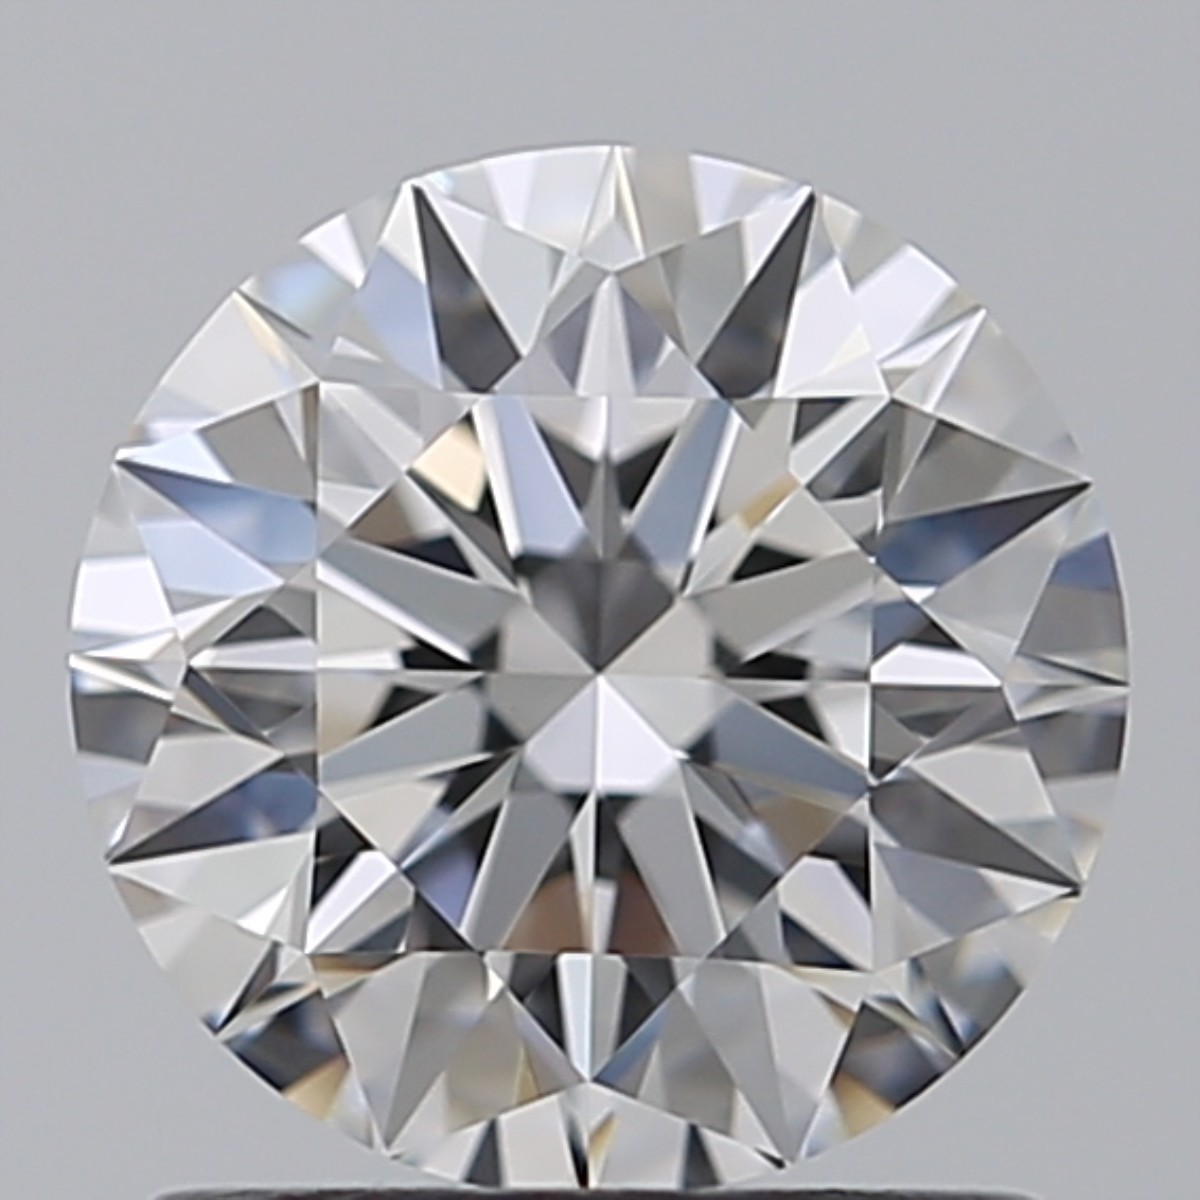 1.12 Carat Round Brilliant Diamond (E/VVS2)